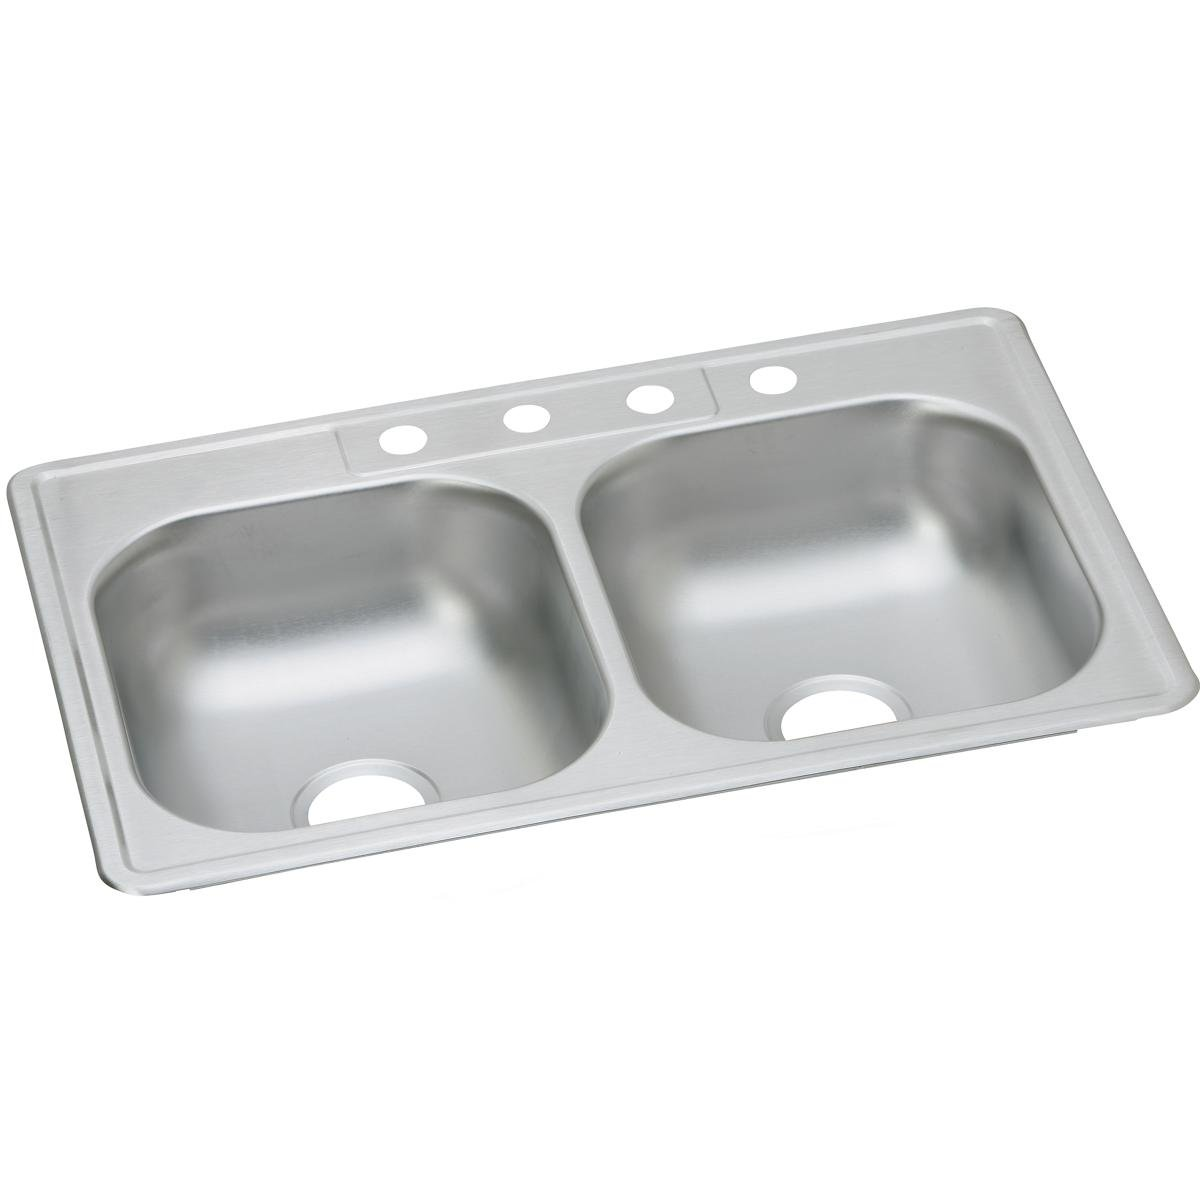 Dayton D233213 Equal Double Bowl Top Mount Stainless Steel Sink by Elkay